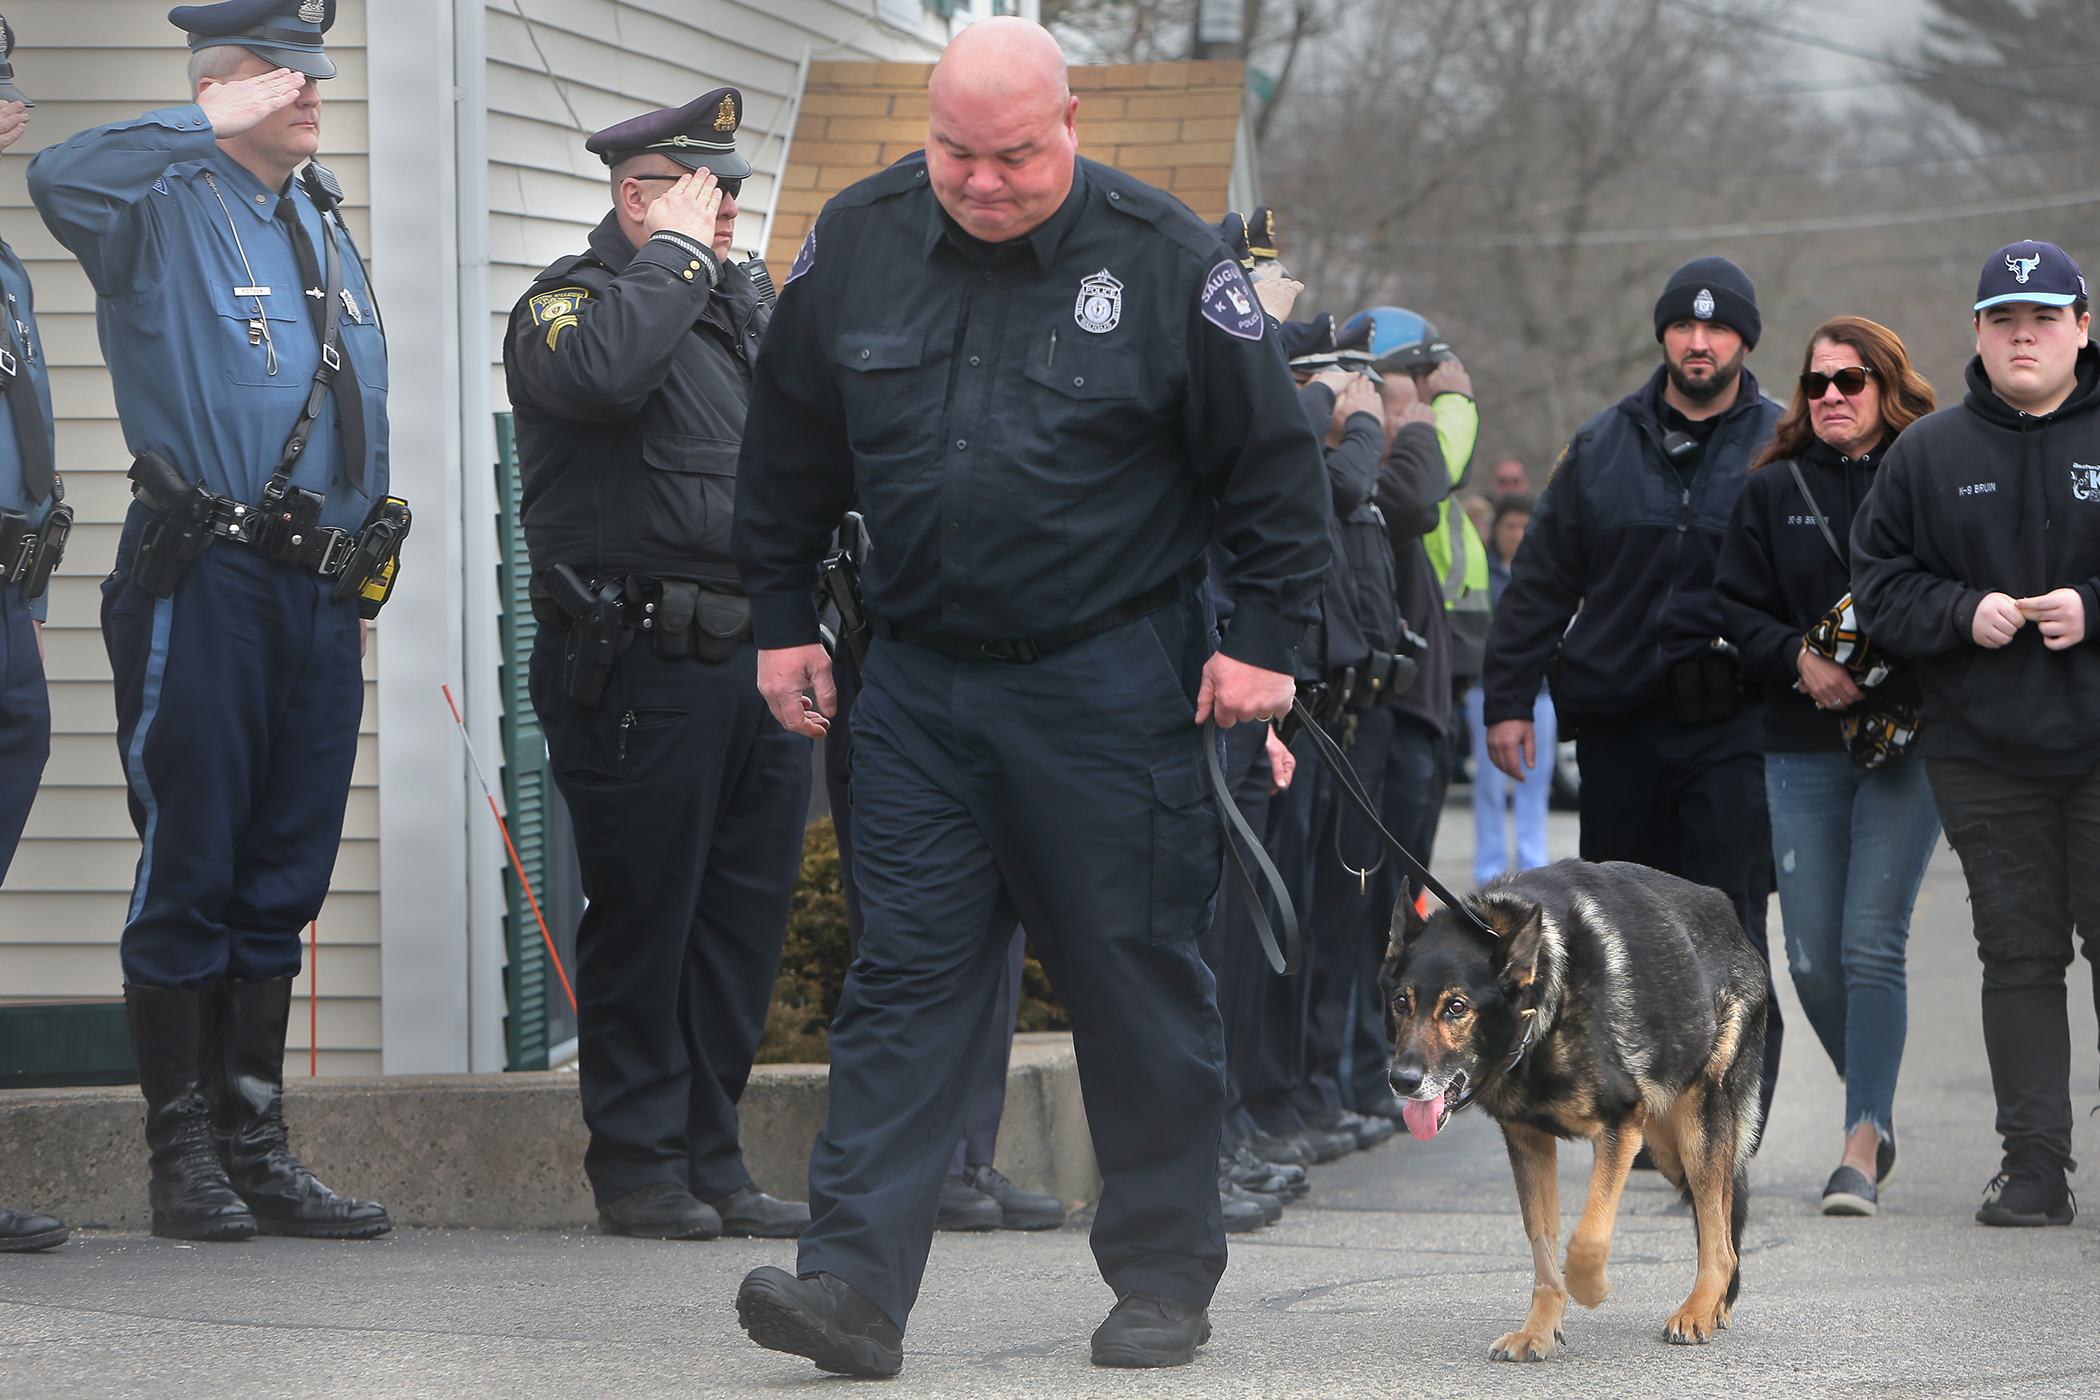 Saugus police bid a tearful goodbye to cancer-stricken K-9